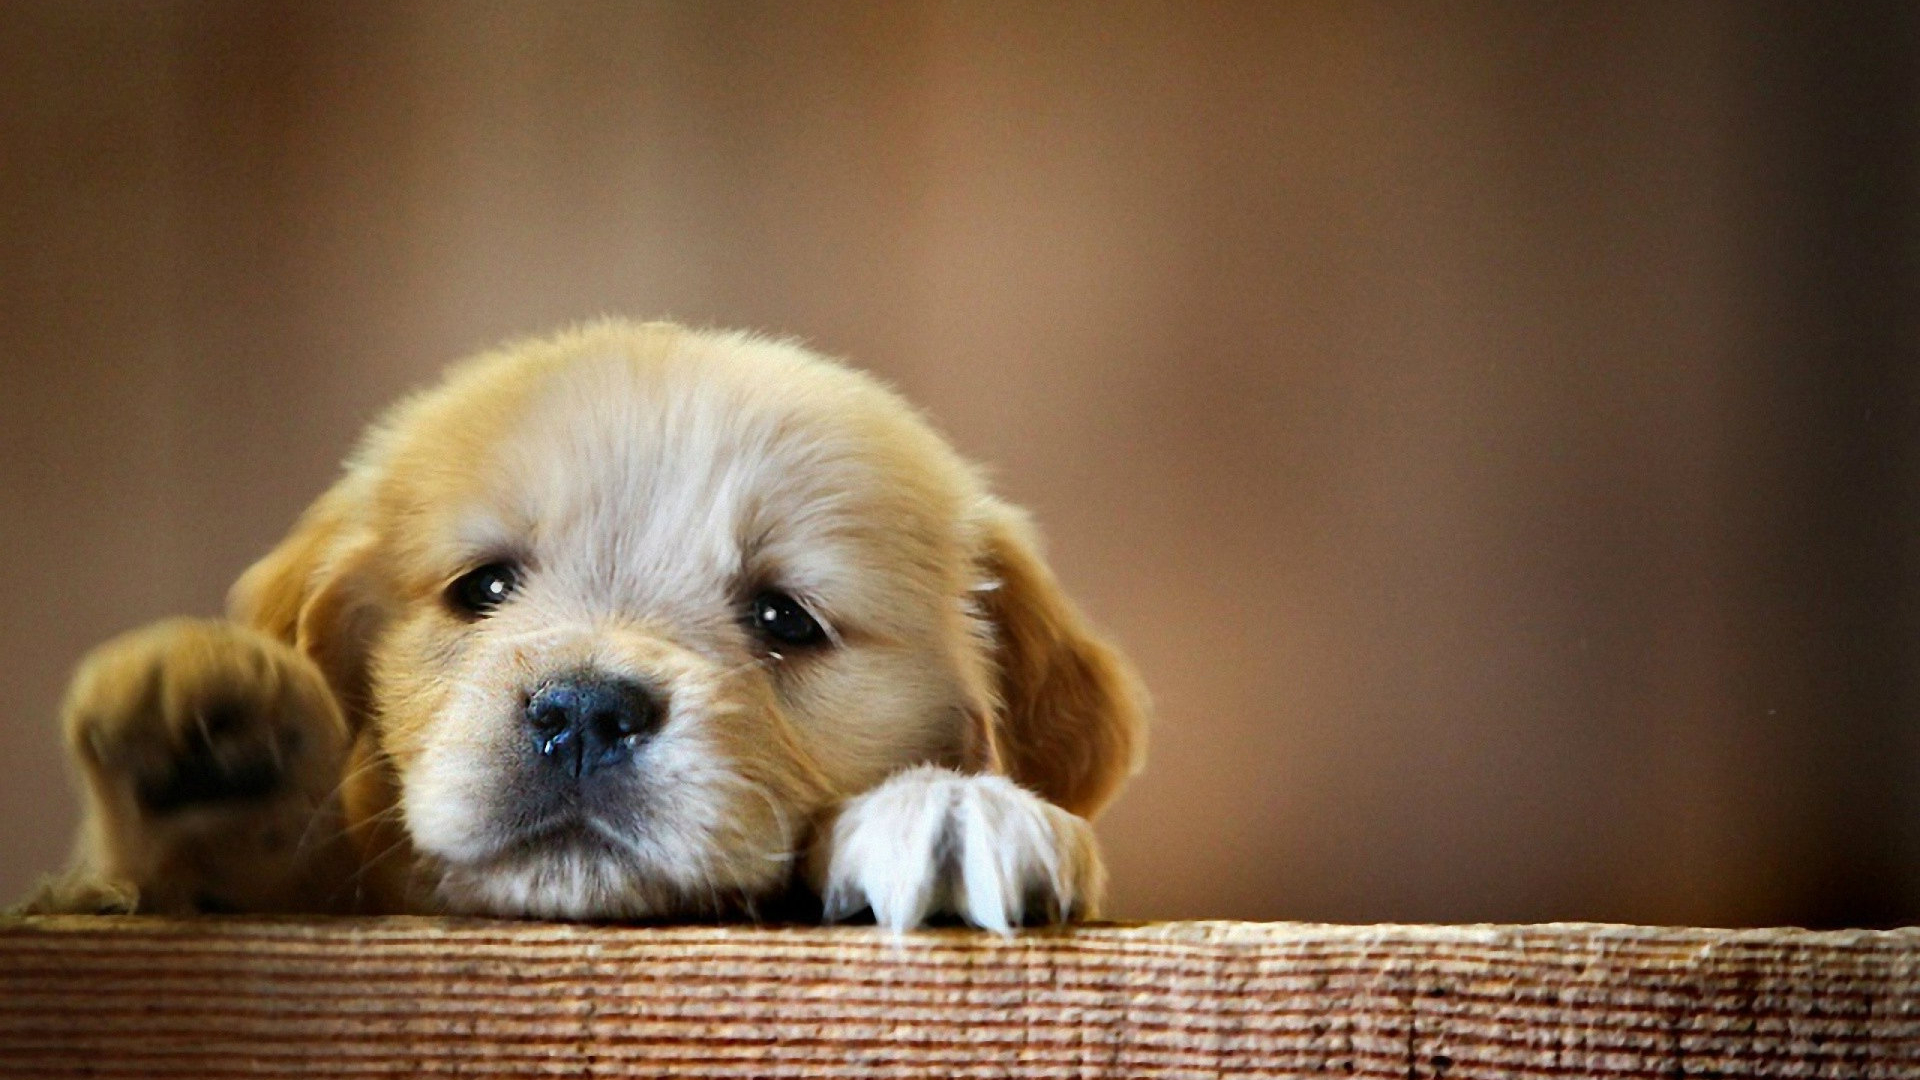 Free Download Cute Baby Dog Desktop Wallpapers Dogs Wallpapers Hd 1920x1200 For Your Desktop Mobile Tablet Explore 72 Cute Puppy Wallpaper Cute Animal Wallpaper Christmas Puppies Wallpaper Puppy Wallpapers